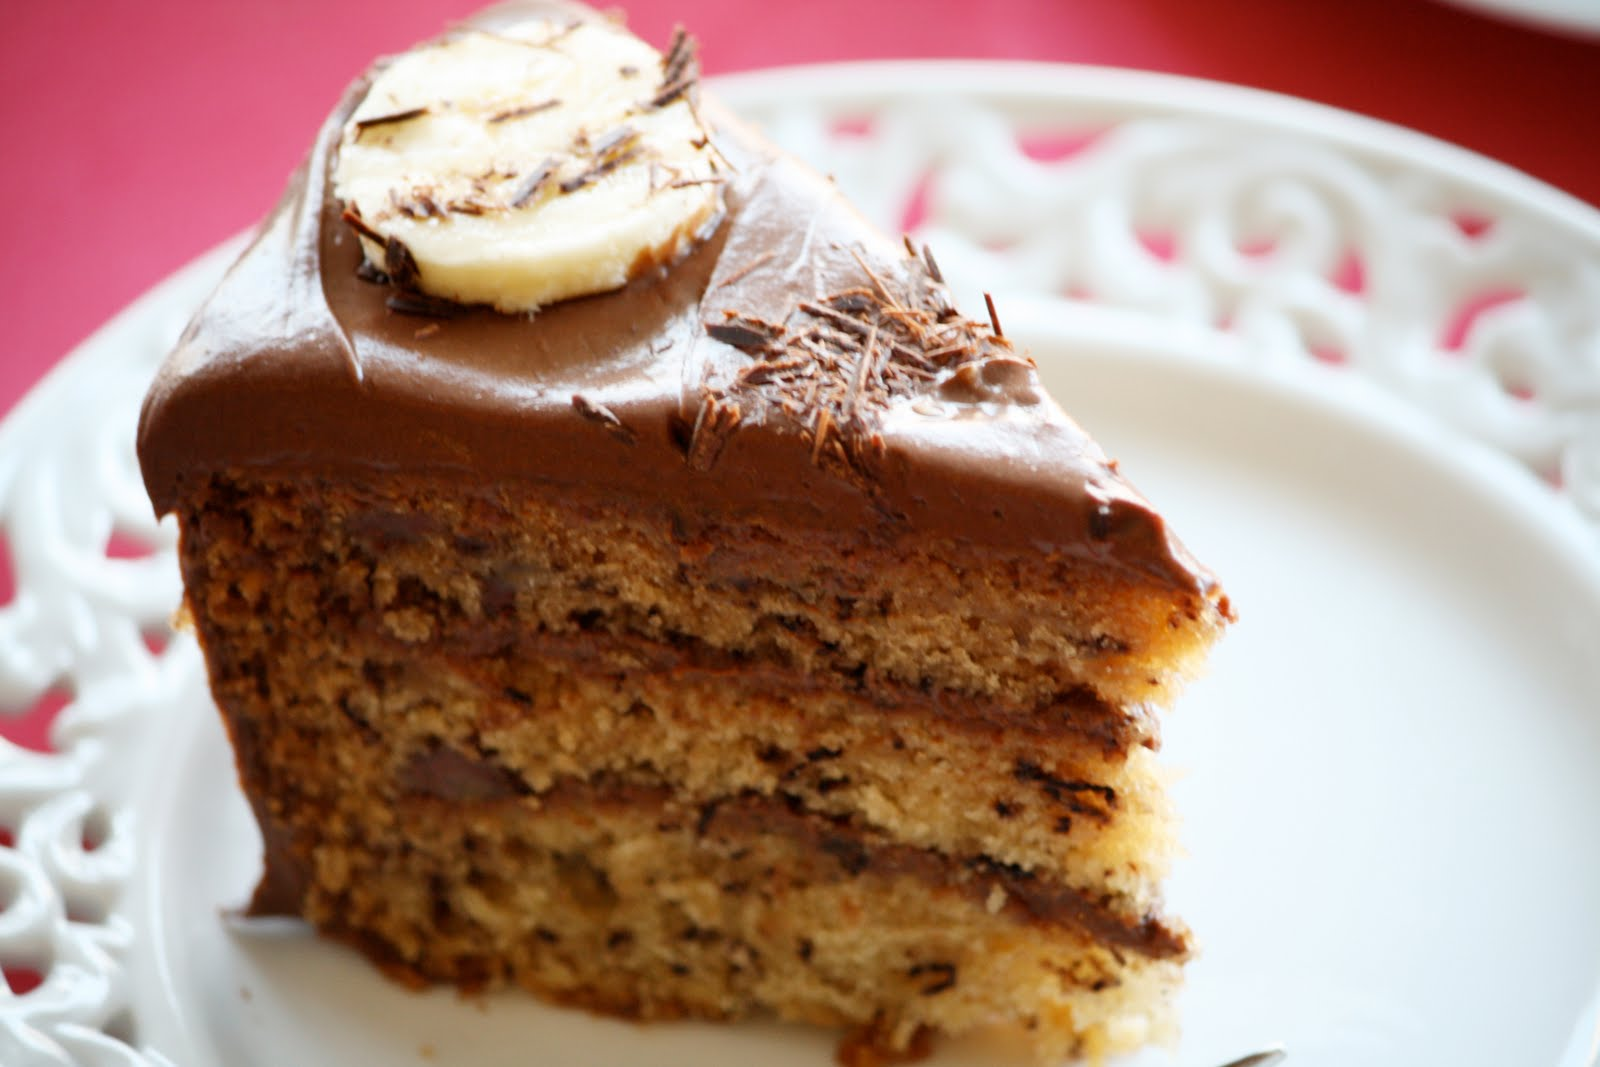 Chocolate Cake Recipe Moist Uk: Edible Moments: Extremely Moist Banana Cake With Sour